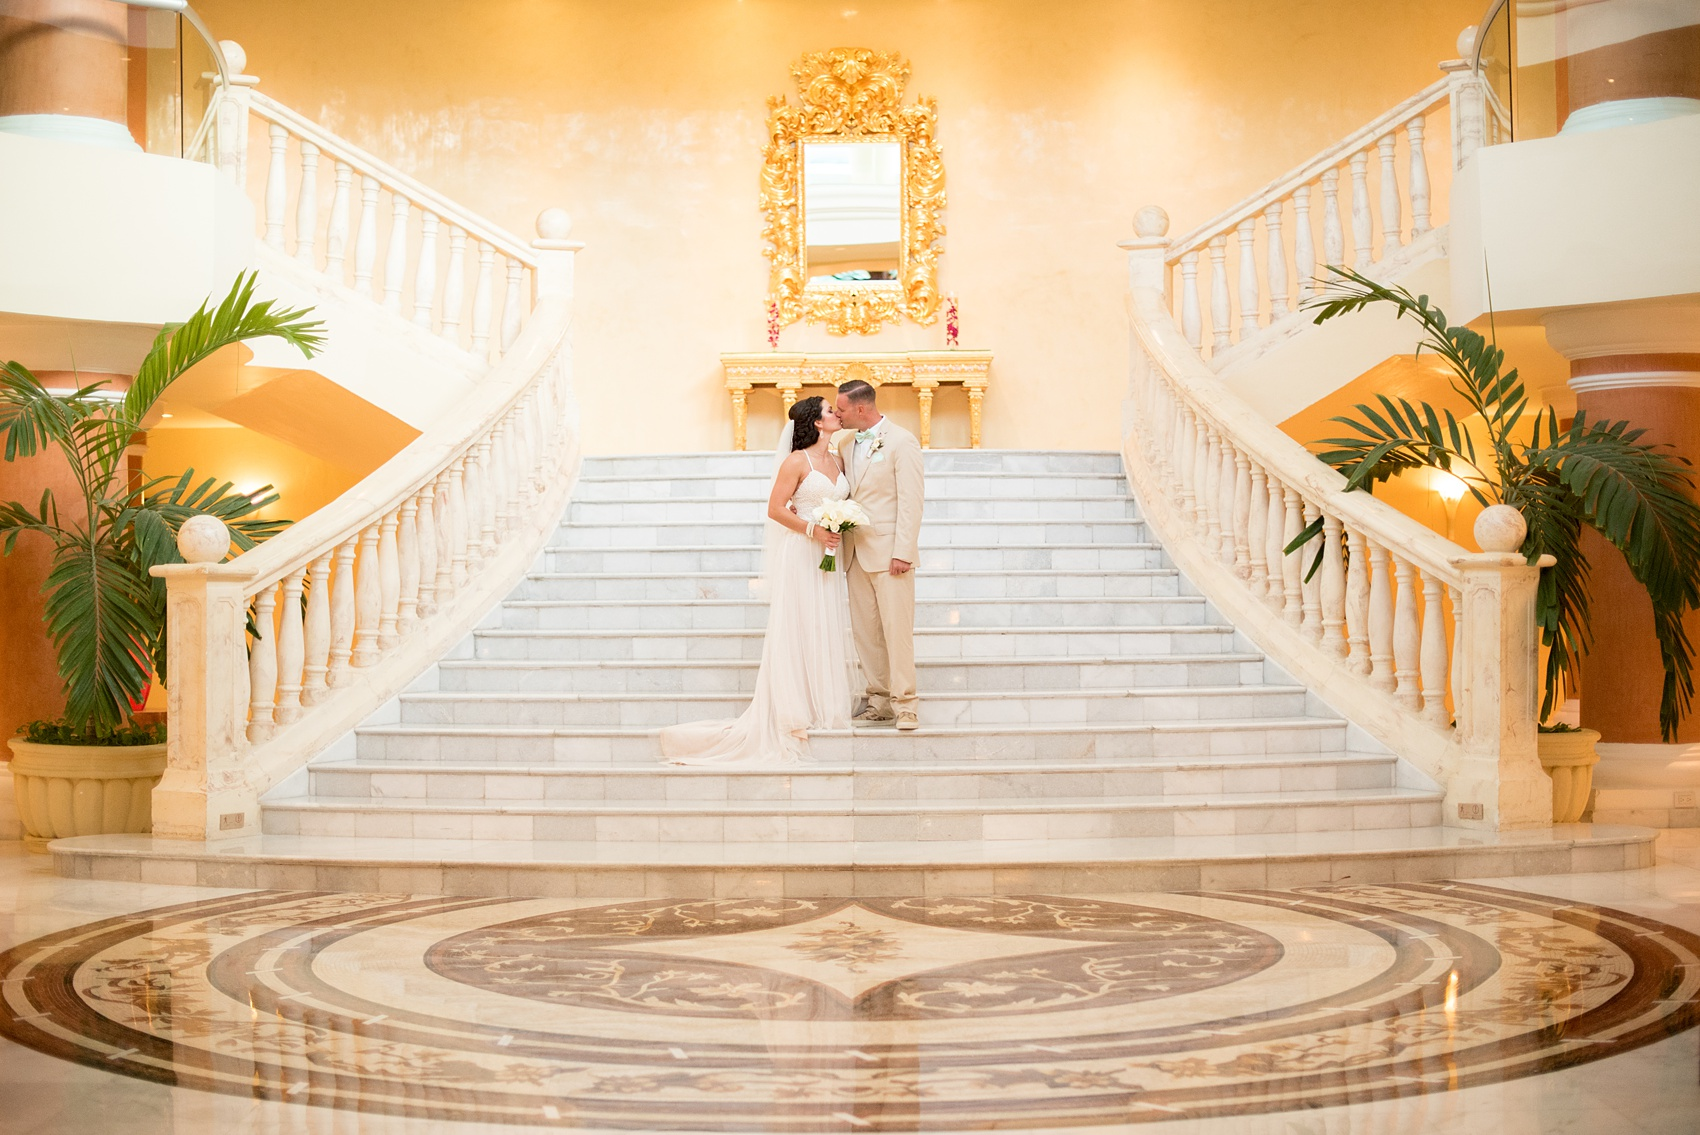 Mikkel Paige Photography photos from a wedding at Grand Paraiso, Mexico, Playa del Carmen Iberostar resort. Picture of the bride and groom kissing on the grand marble staircase in the resort.